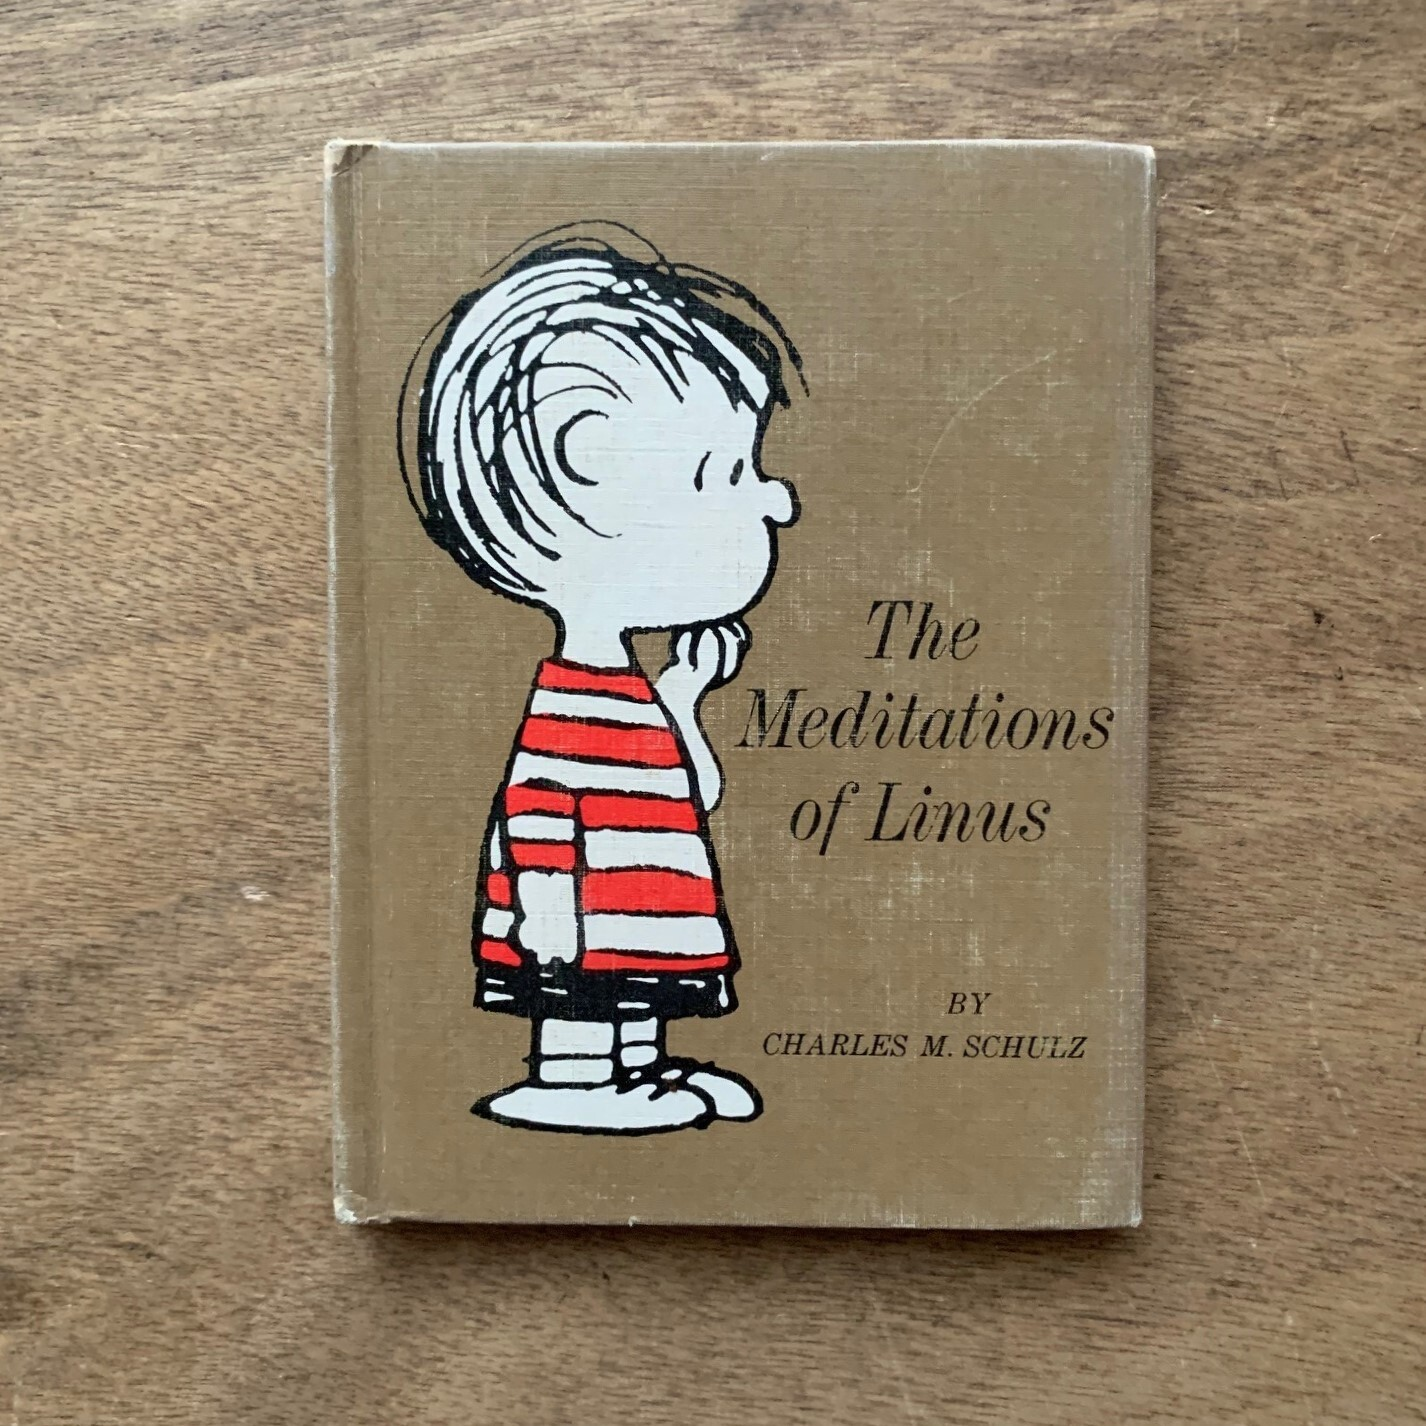 The Meditations of Linus  / Charles M. Schulz